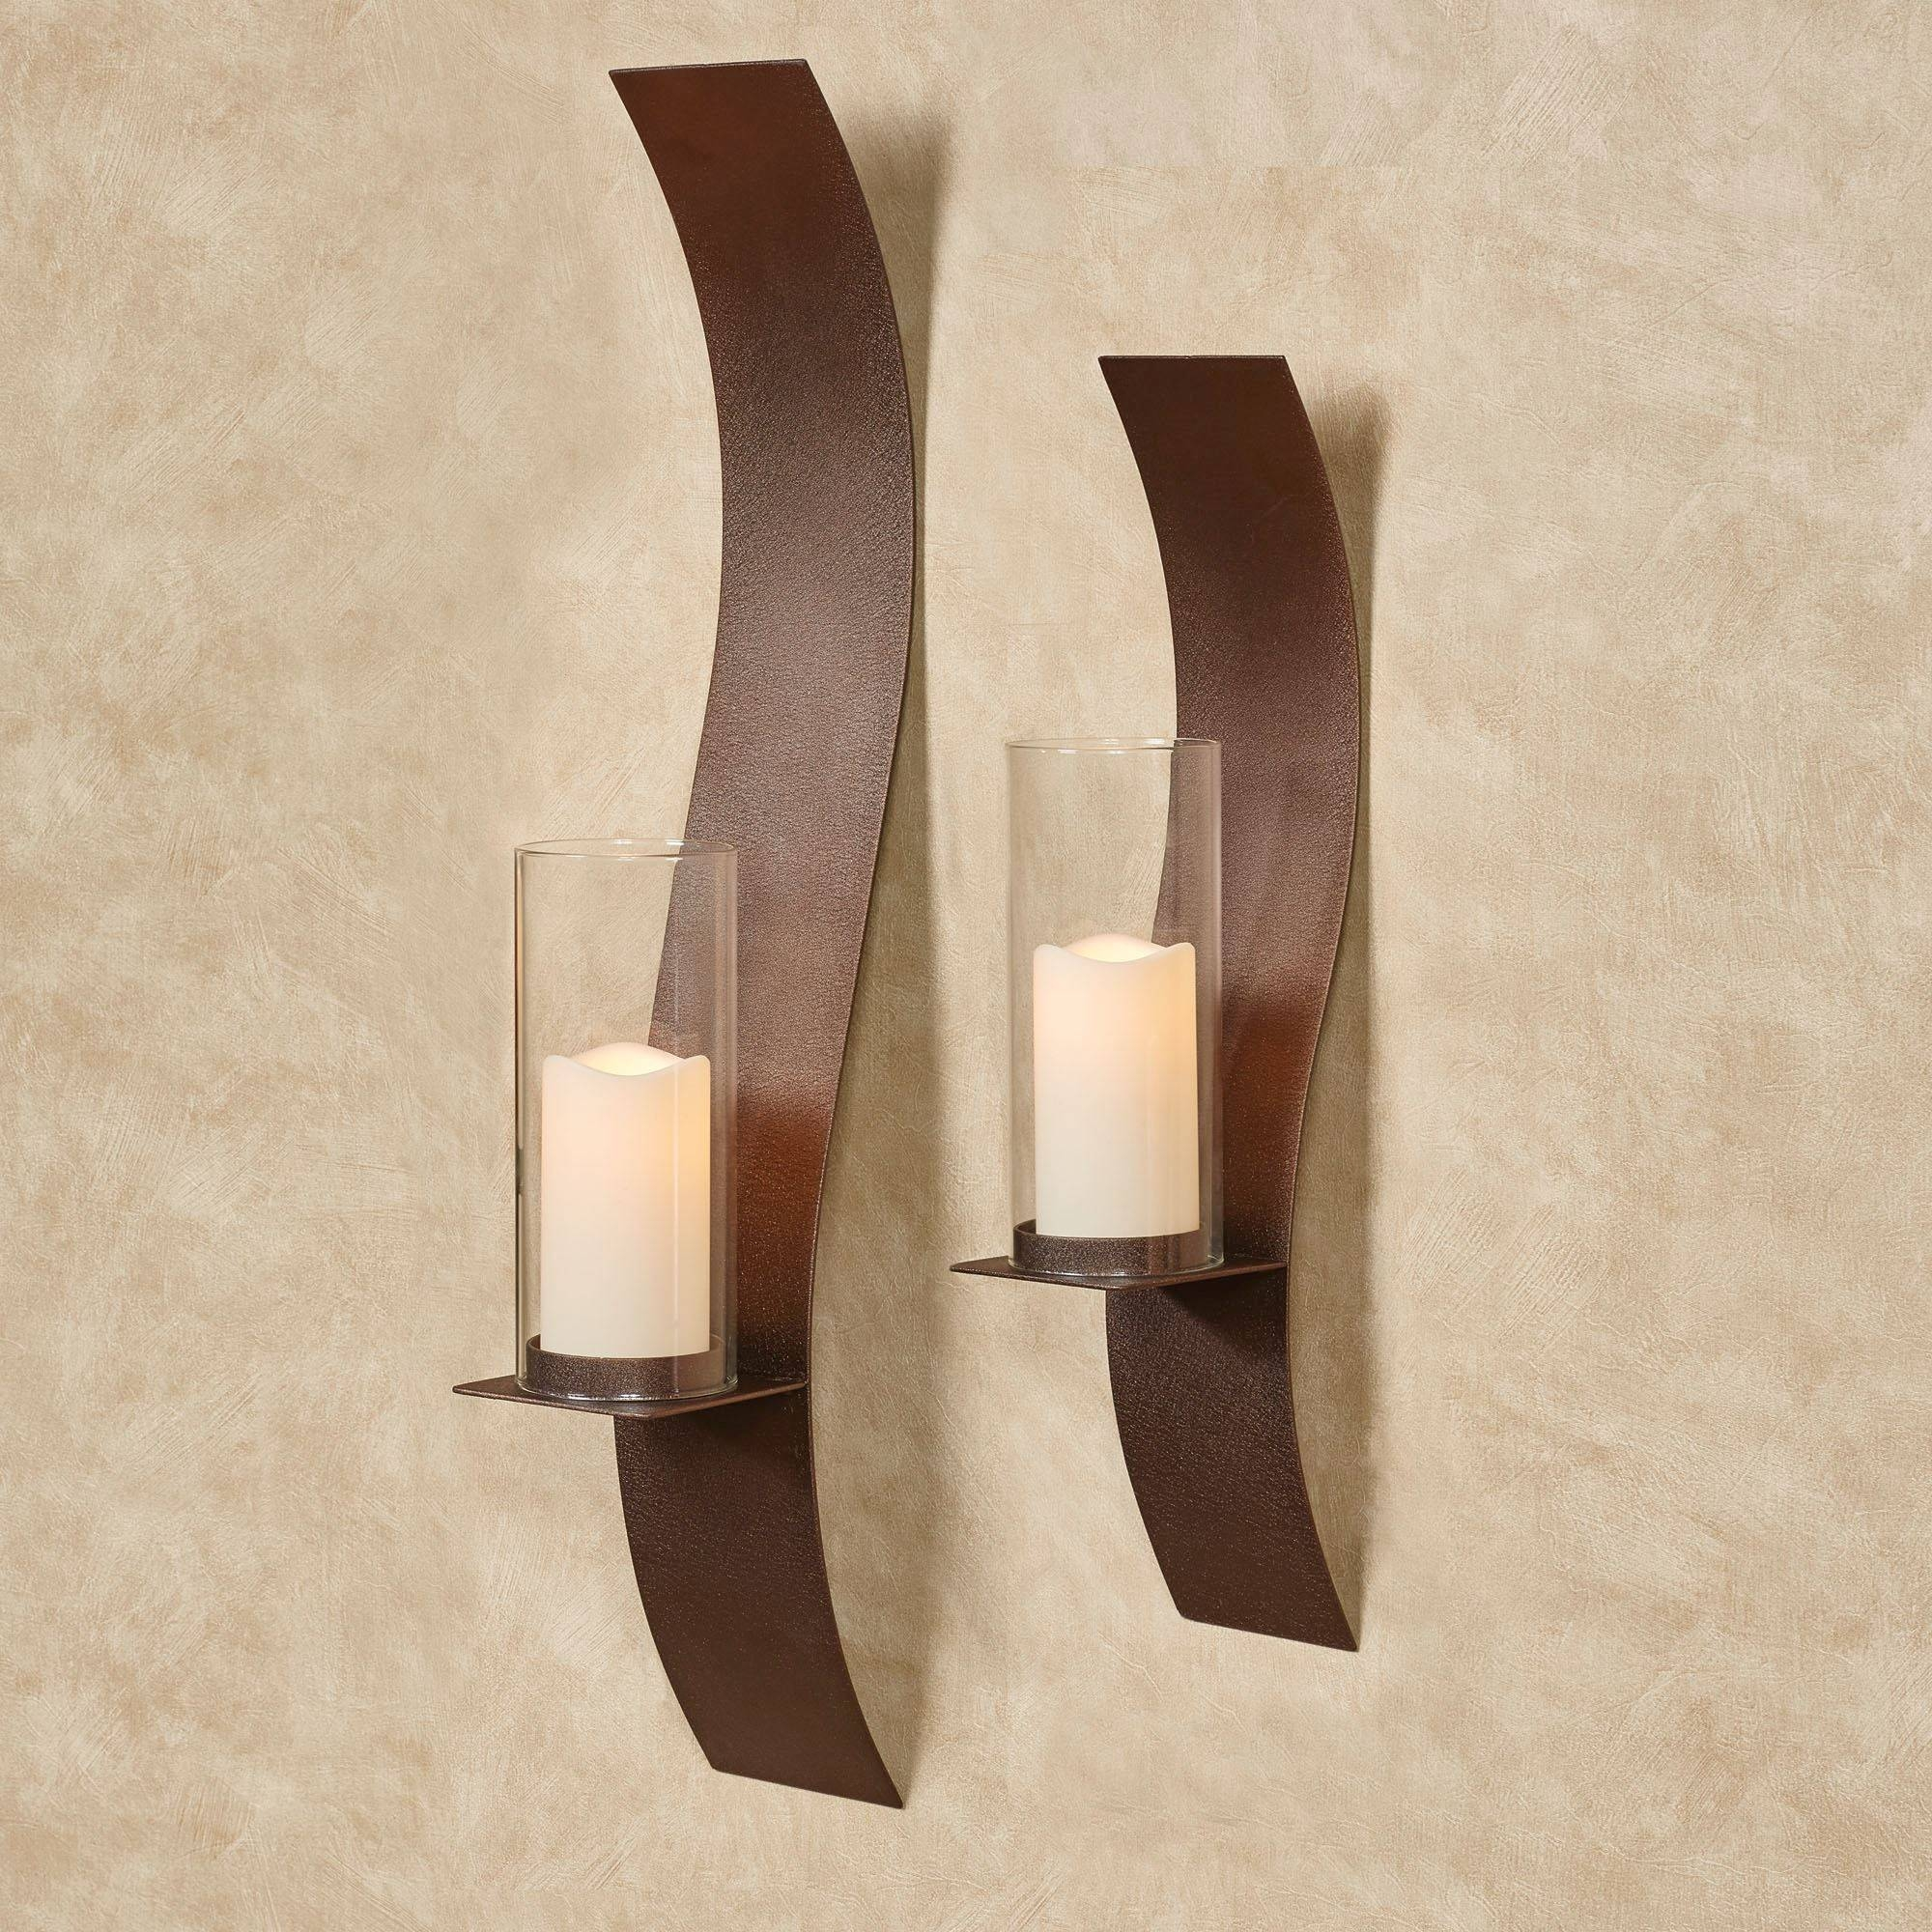 Large Wall Sconces And Candleholders | Touch Of Class In Most Recent Metal Wall Art With Candle Holders (View 18 of 20)